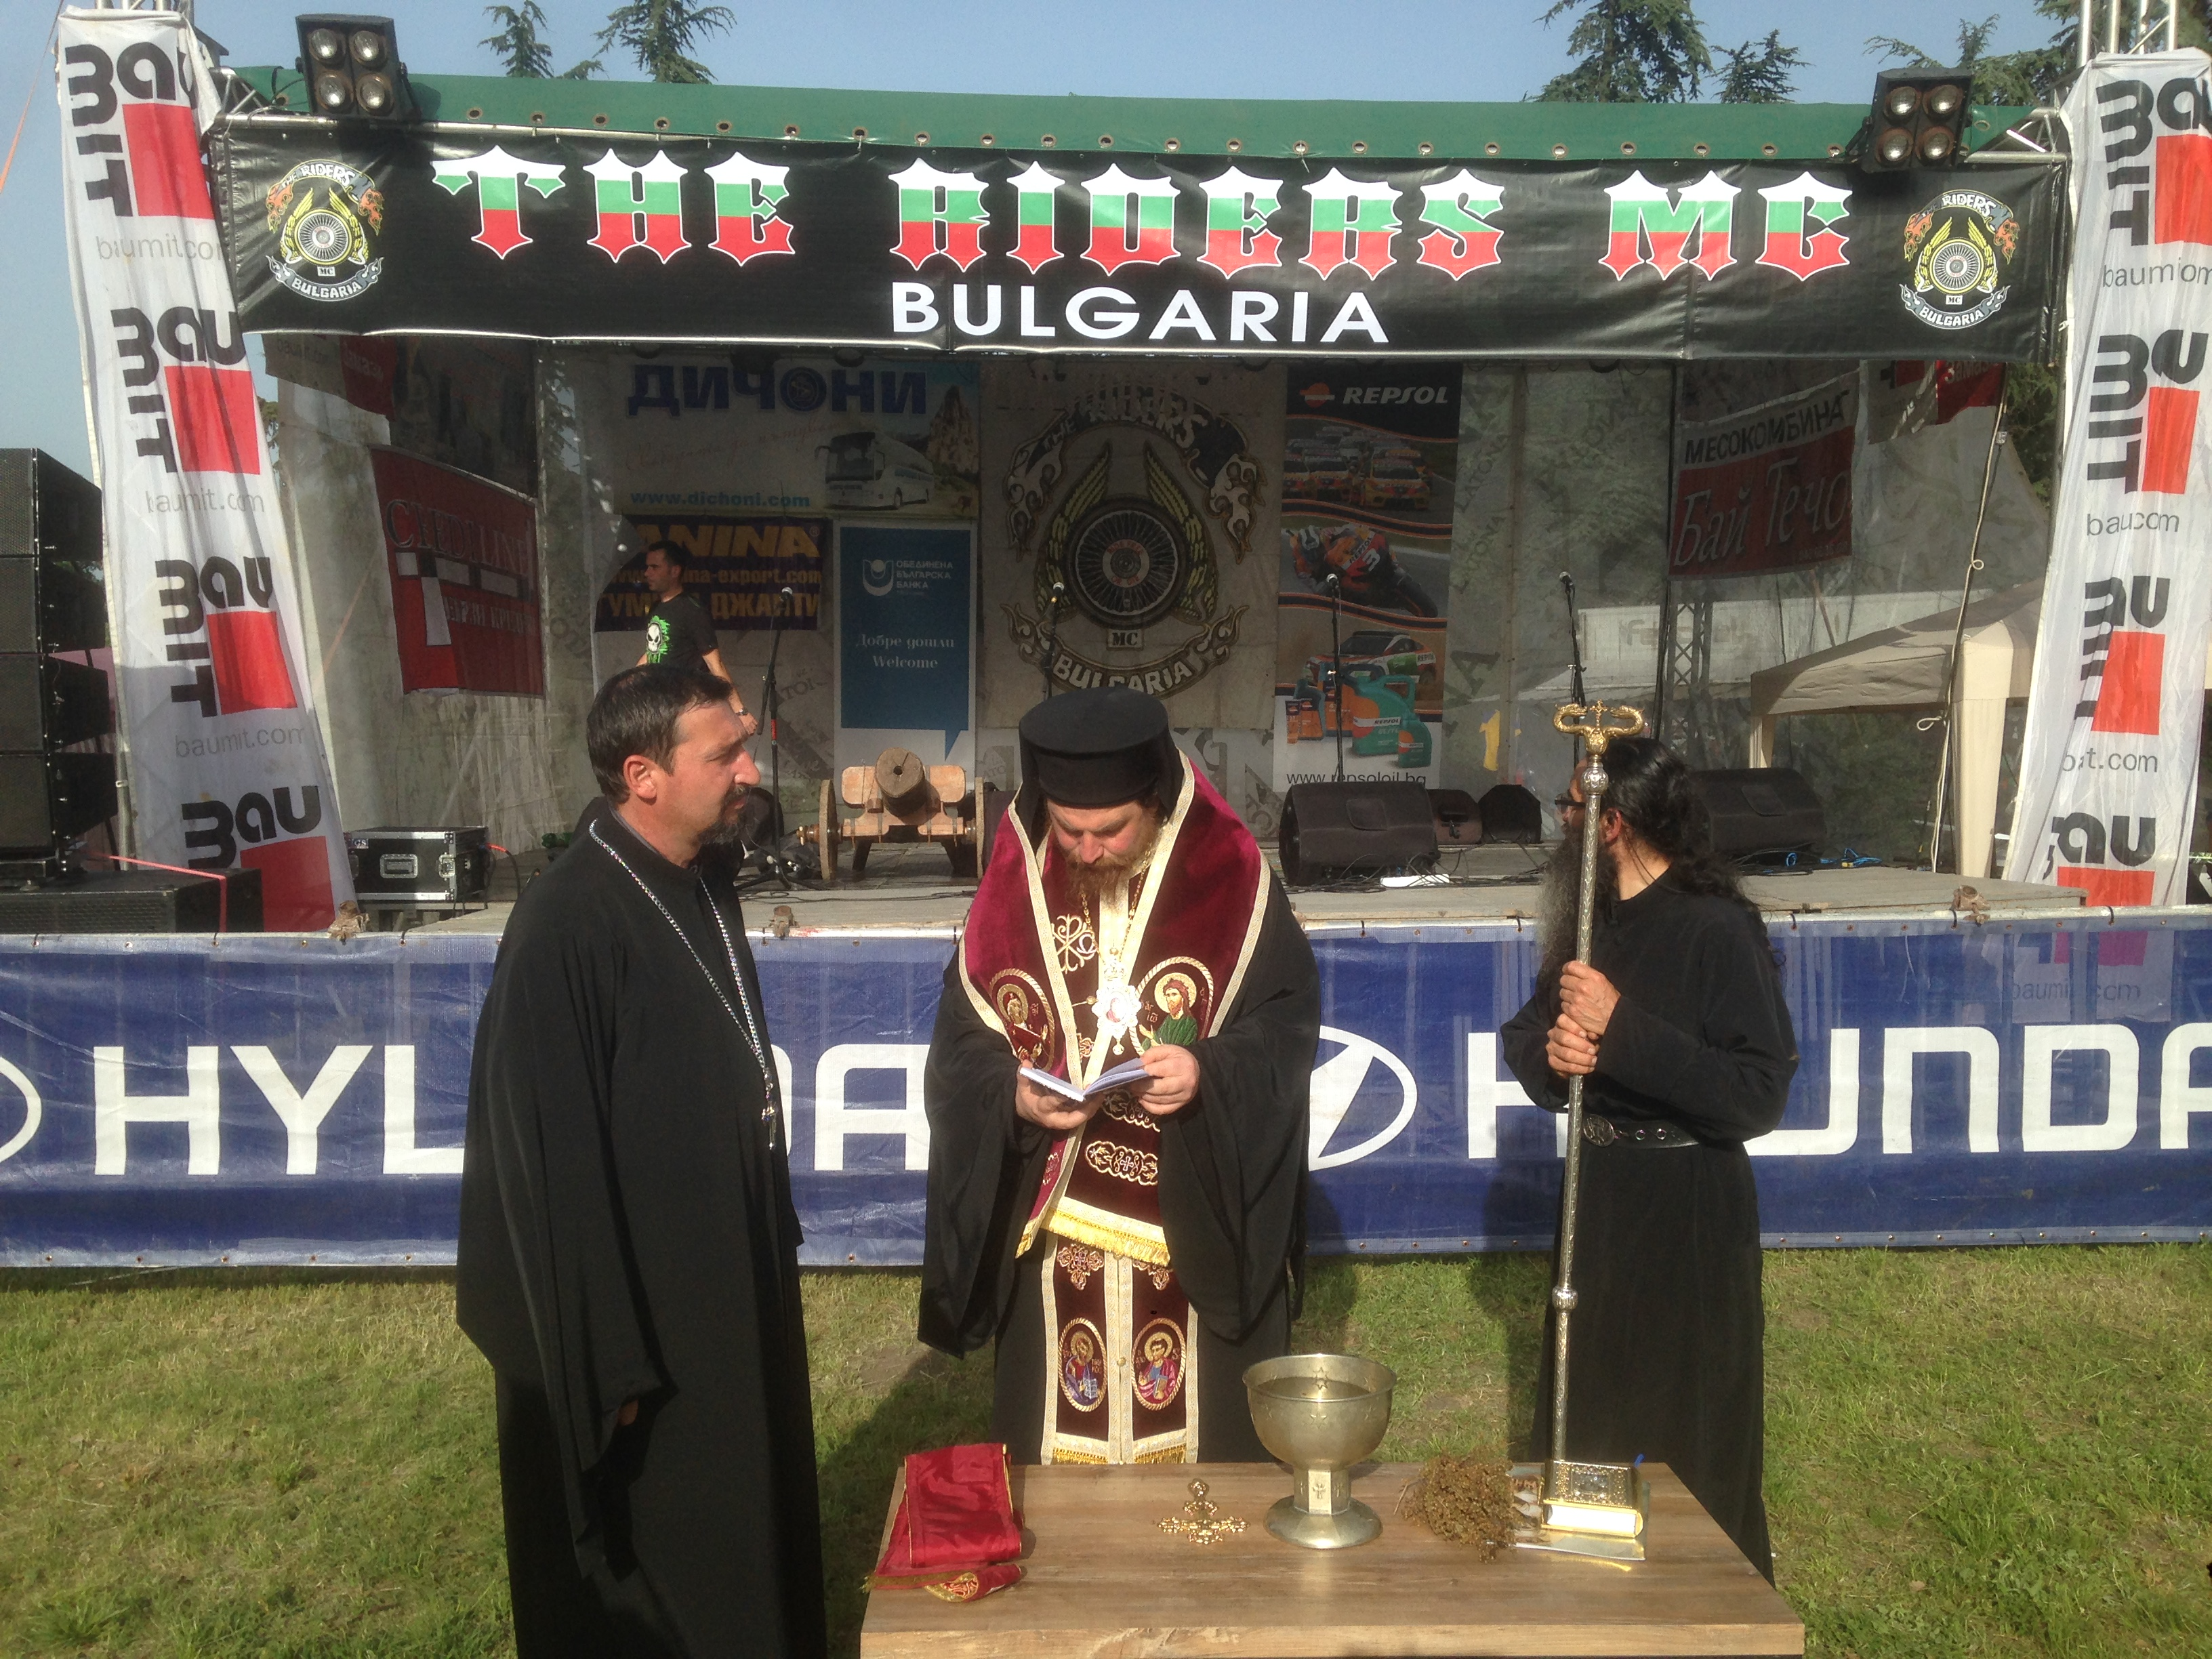 Bishop_Ierotey_Ksakovof_Agathopol-Bishop-of-Bulgarian-Orthodox-Church_Moto-rocker-feast-Bakadjika-2017